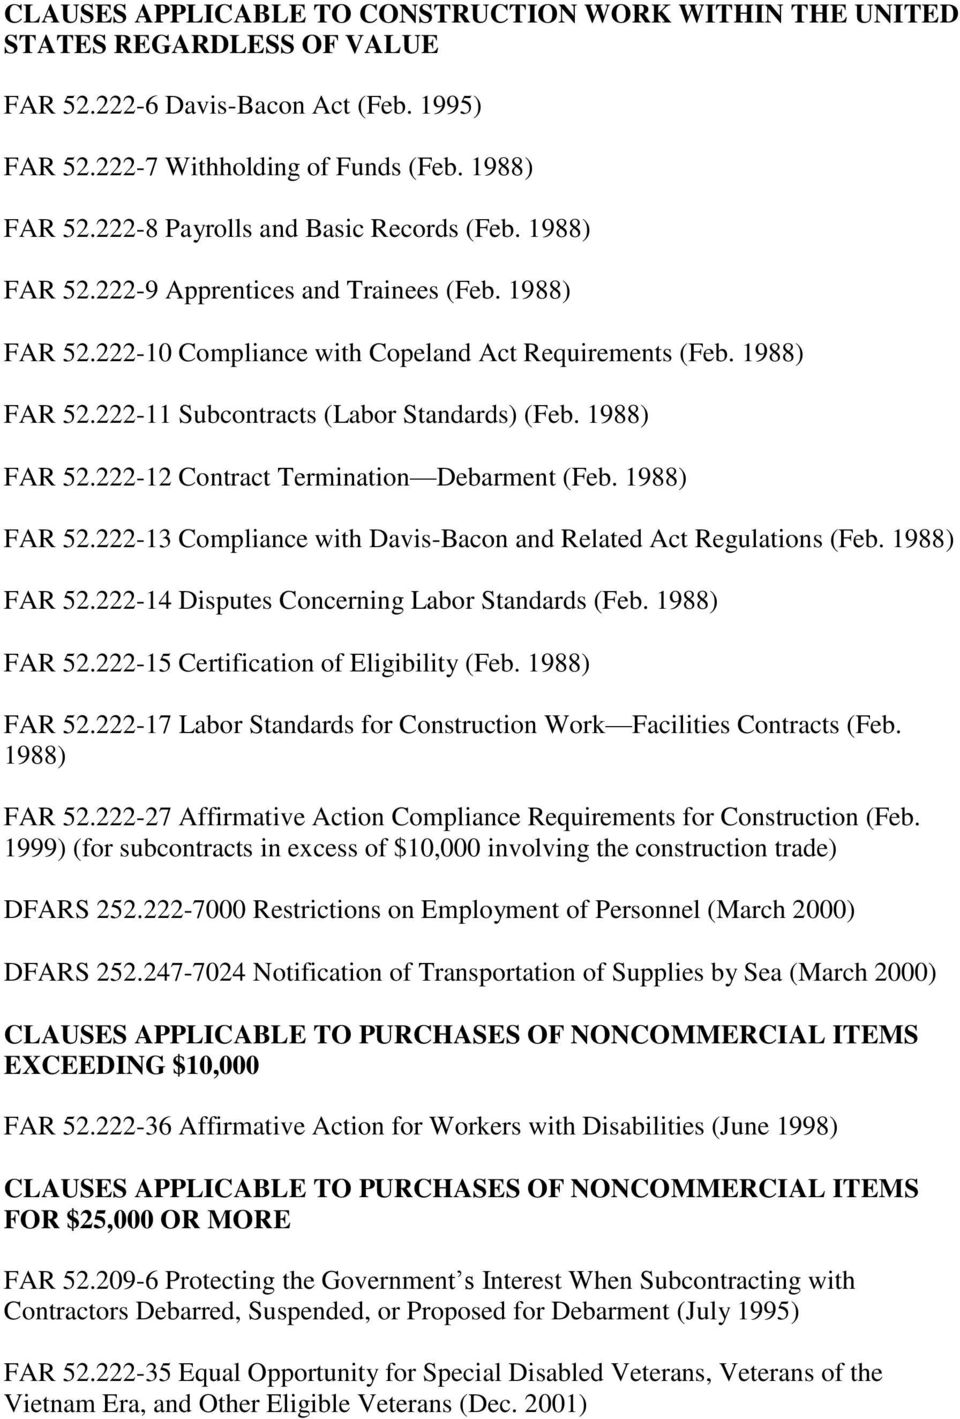 1988) FAR 52.222-12 Contract Termination Debarment (Feb. 1988) FAR 52.222-13 Compliance with Davis-Bacon and Related Act Regulations (Feb. 1988) FAR 52.222-14 Disputes Concerning Labor Standards (Feb.